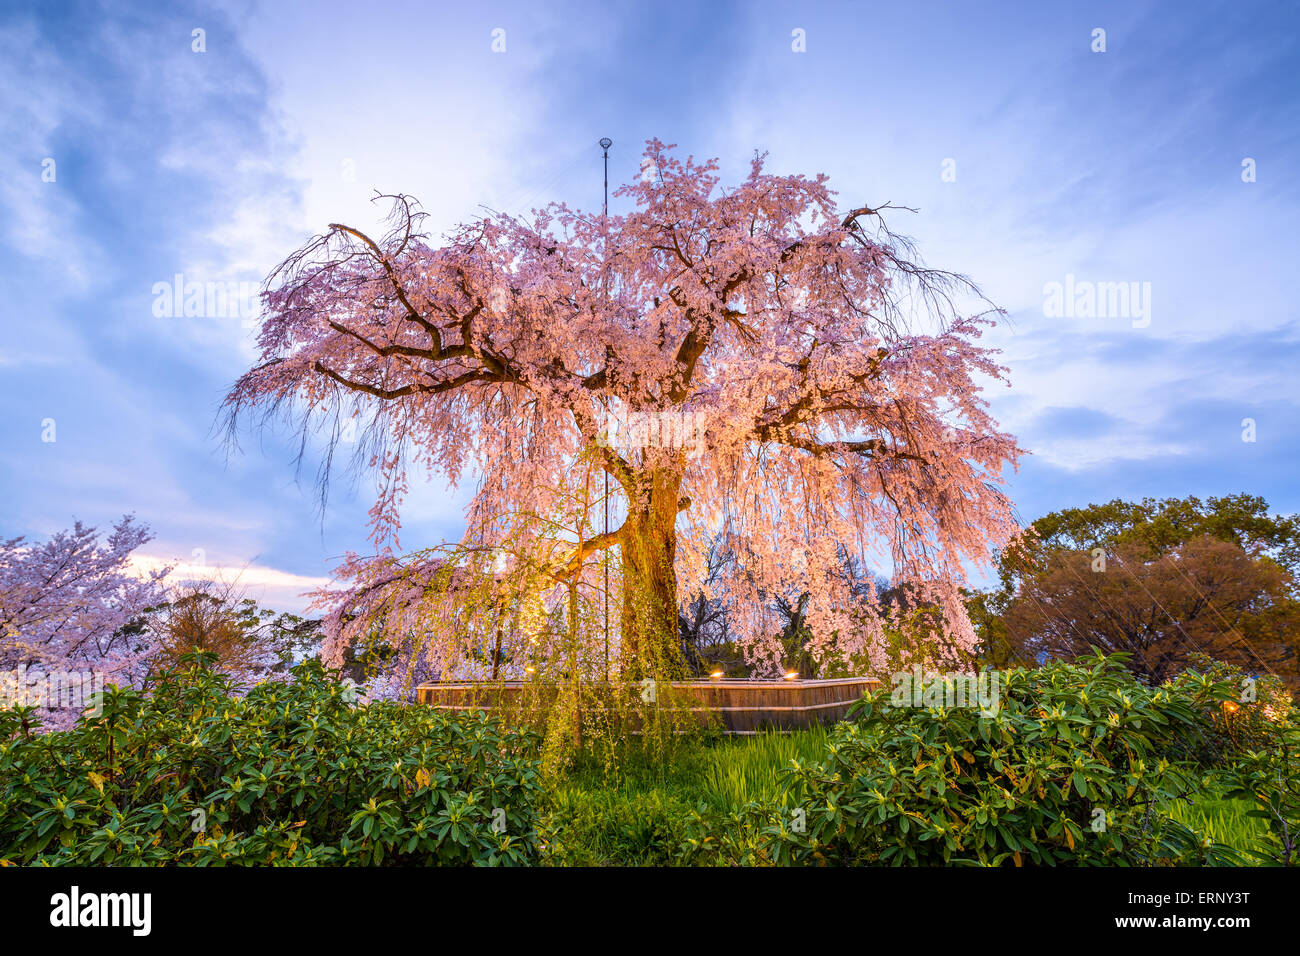 Maruyama Park in Kyoto, Japan during the spring cherry blossom festival. - Stock Image